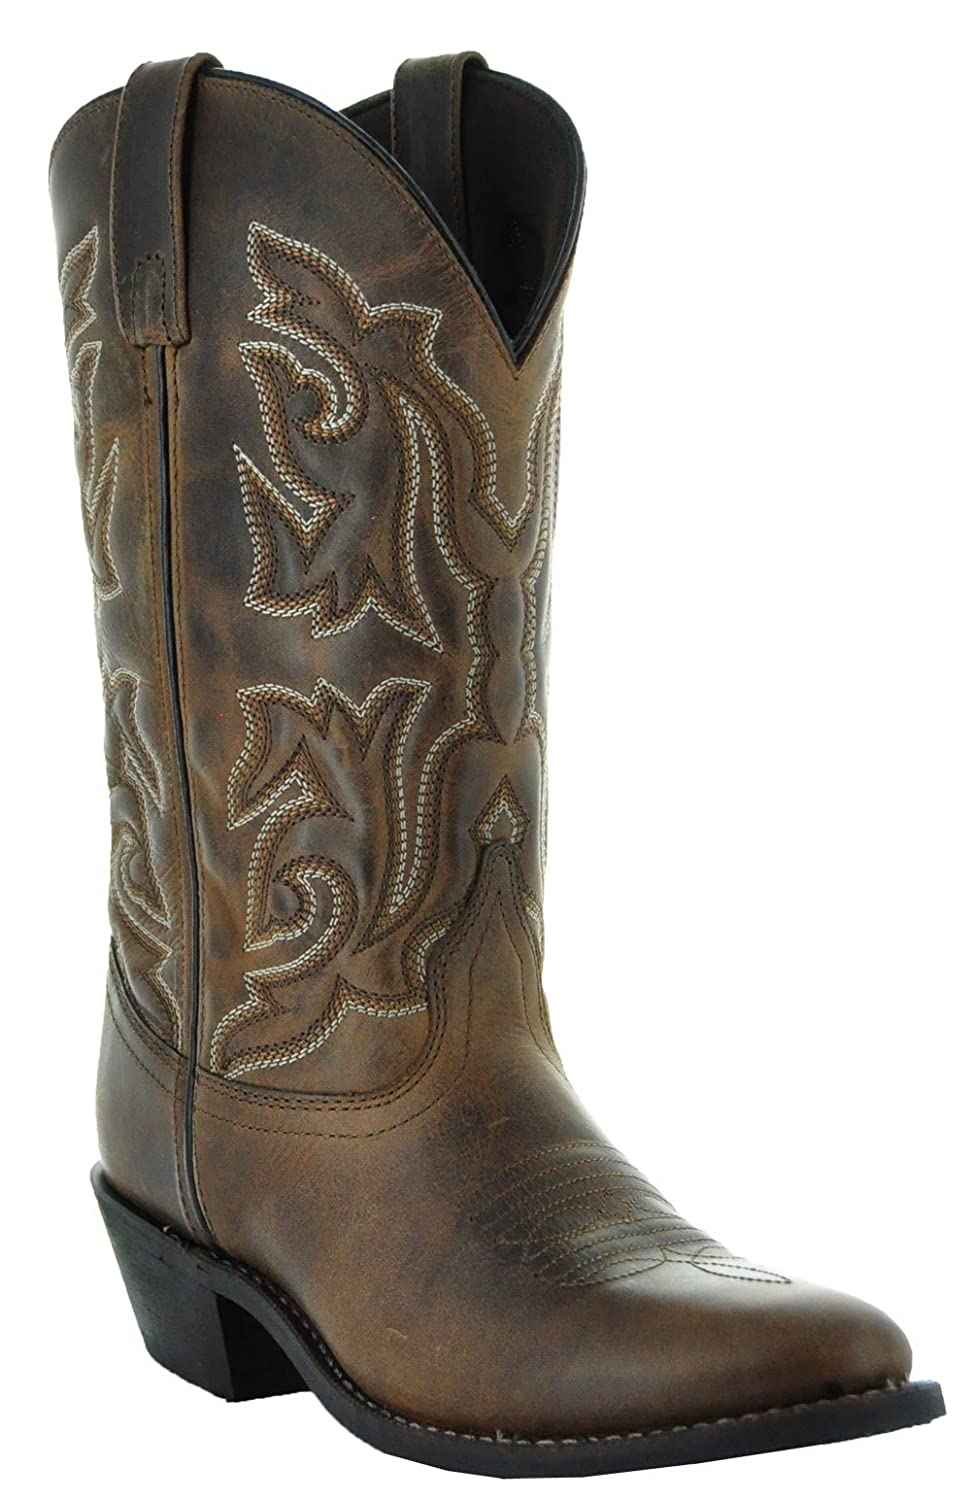 Soto Boots Monterrey Women's Cowgirl Boots by M3001 B075G1P4TC 8 B(M) US|Brown